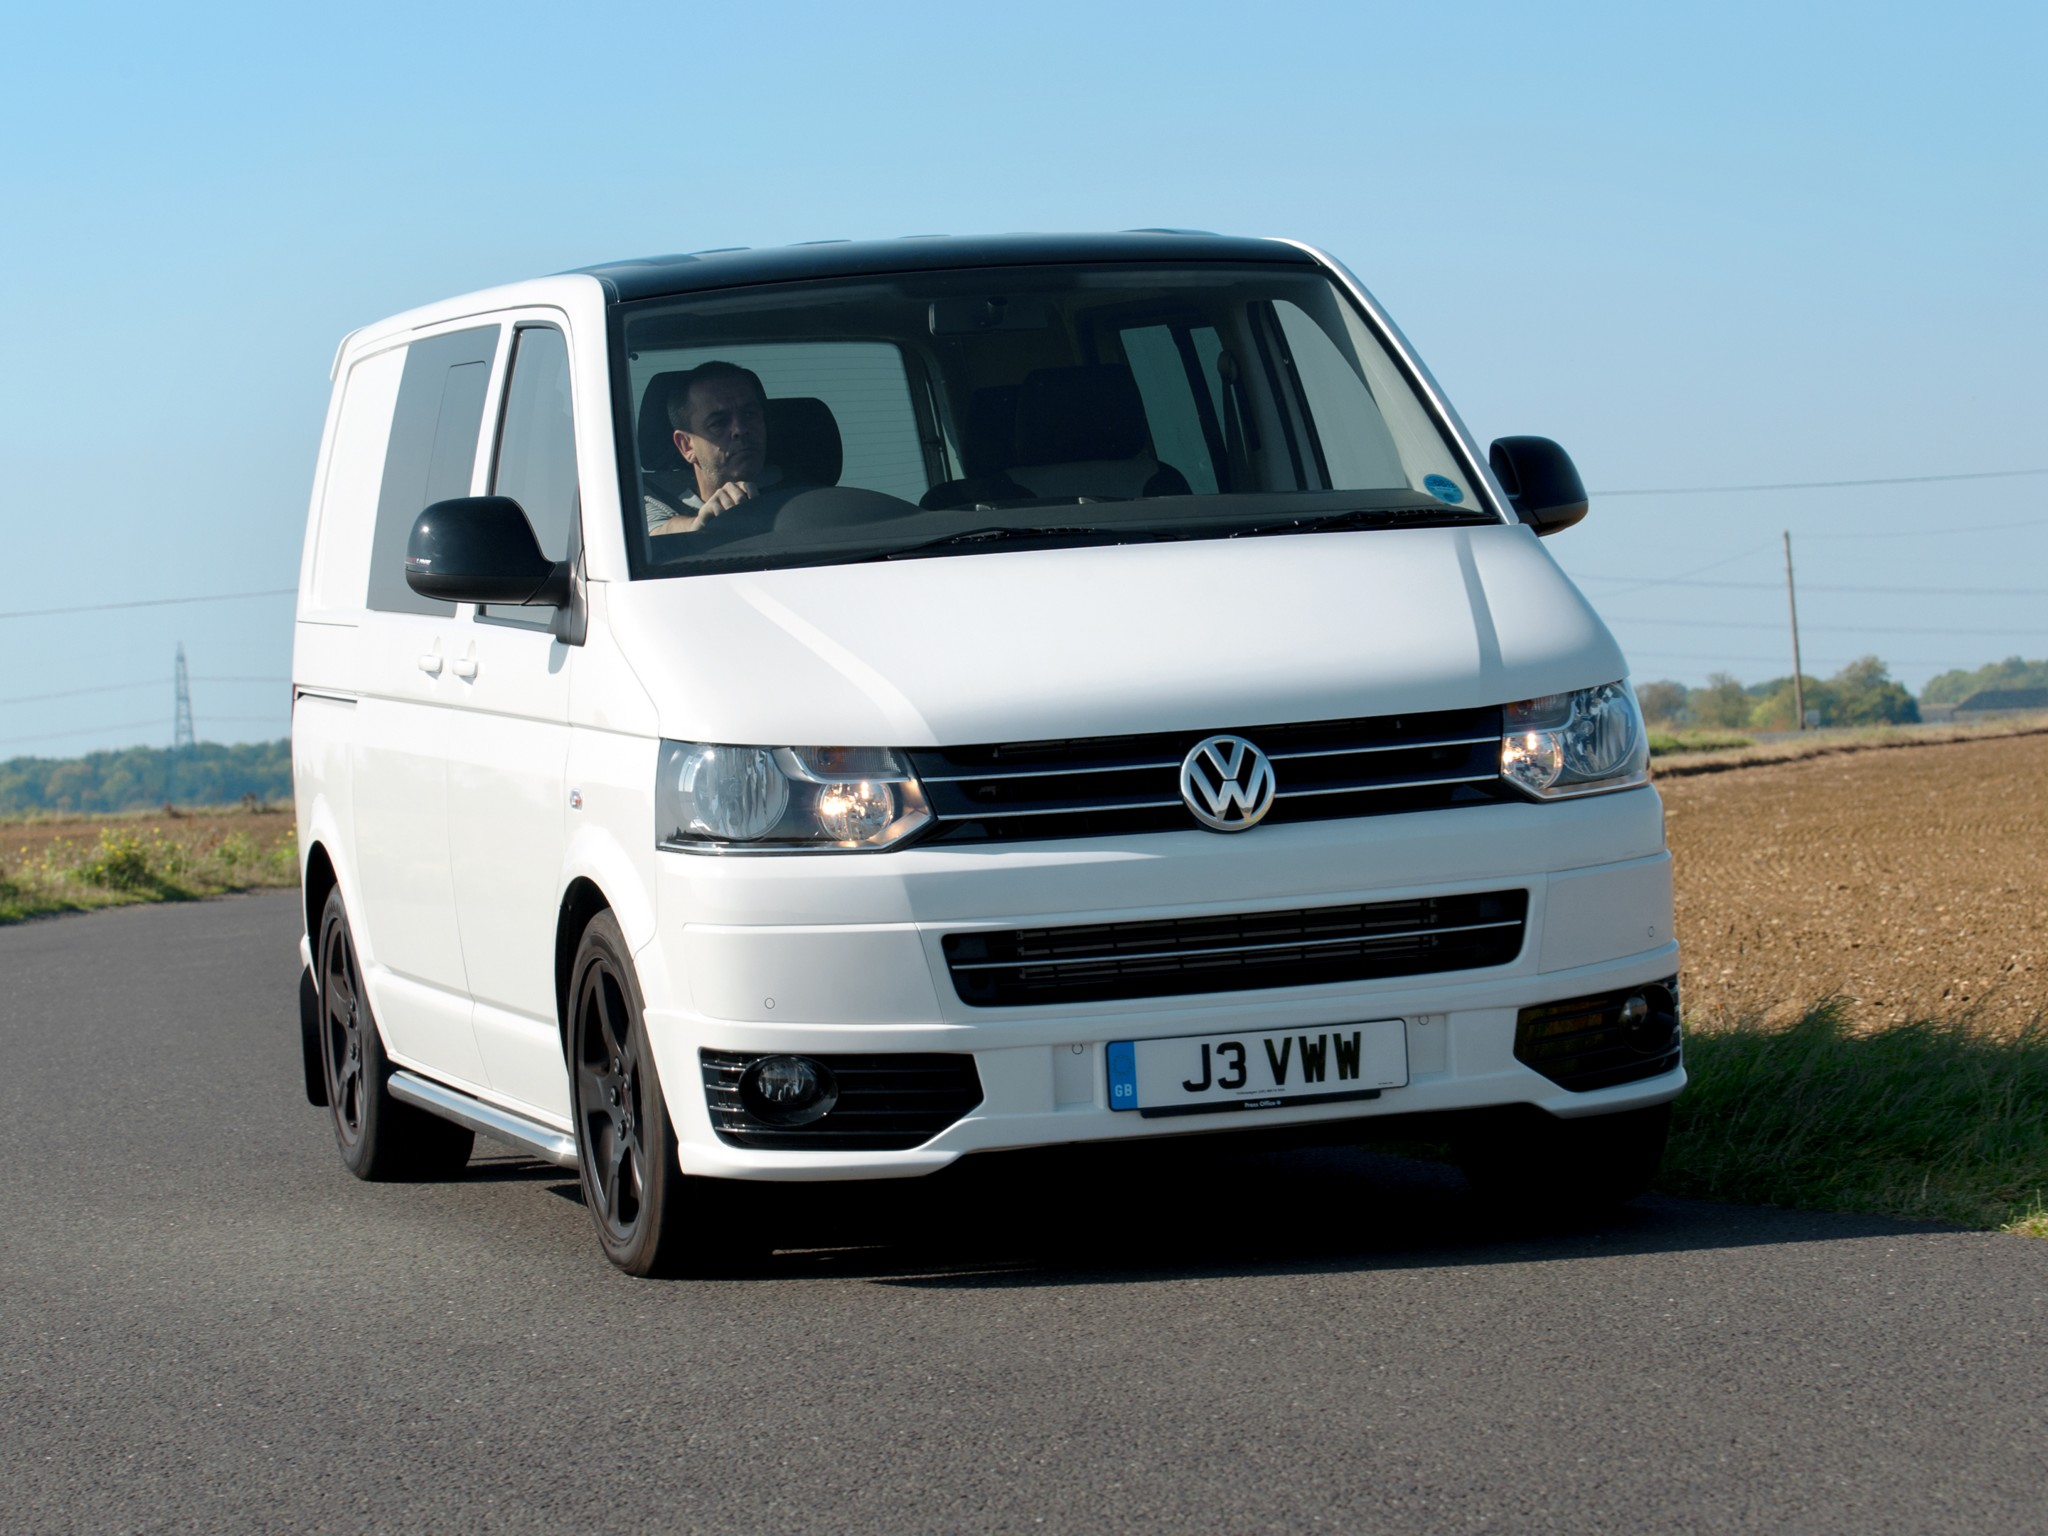 volkswagen t5 transporter combi sportline uk 2011. Black Bedroom Furniture Sets. Home Design Ideas